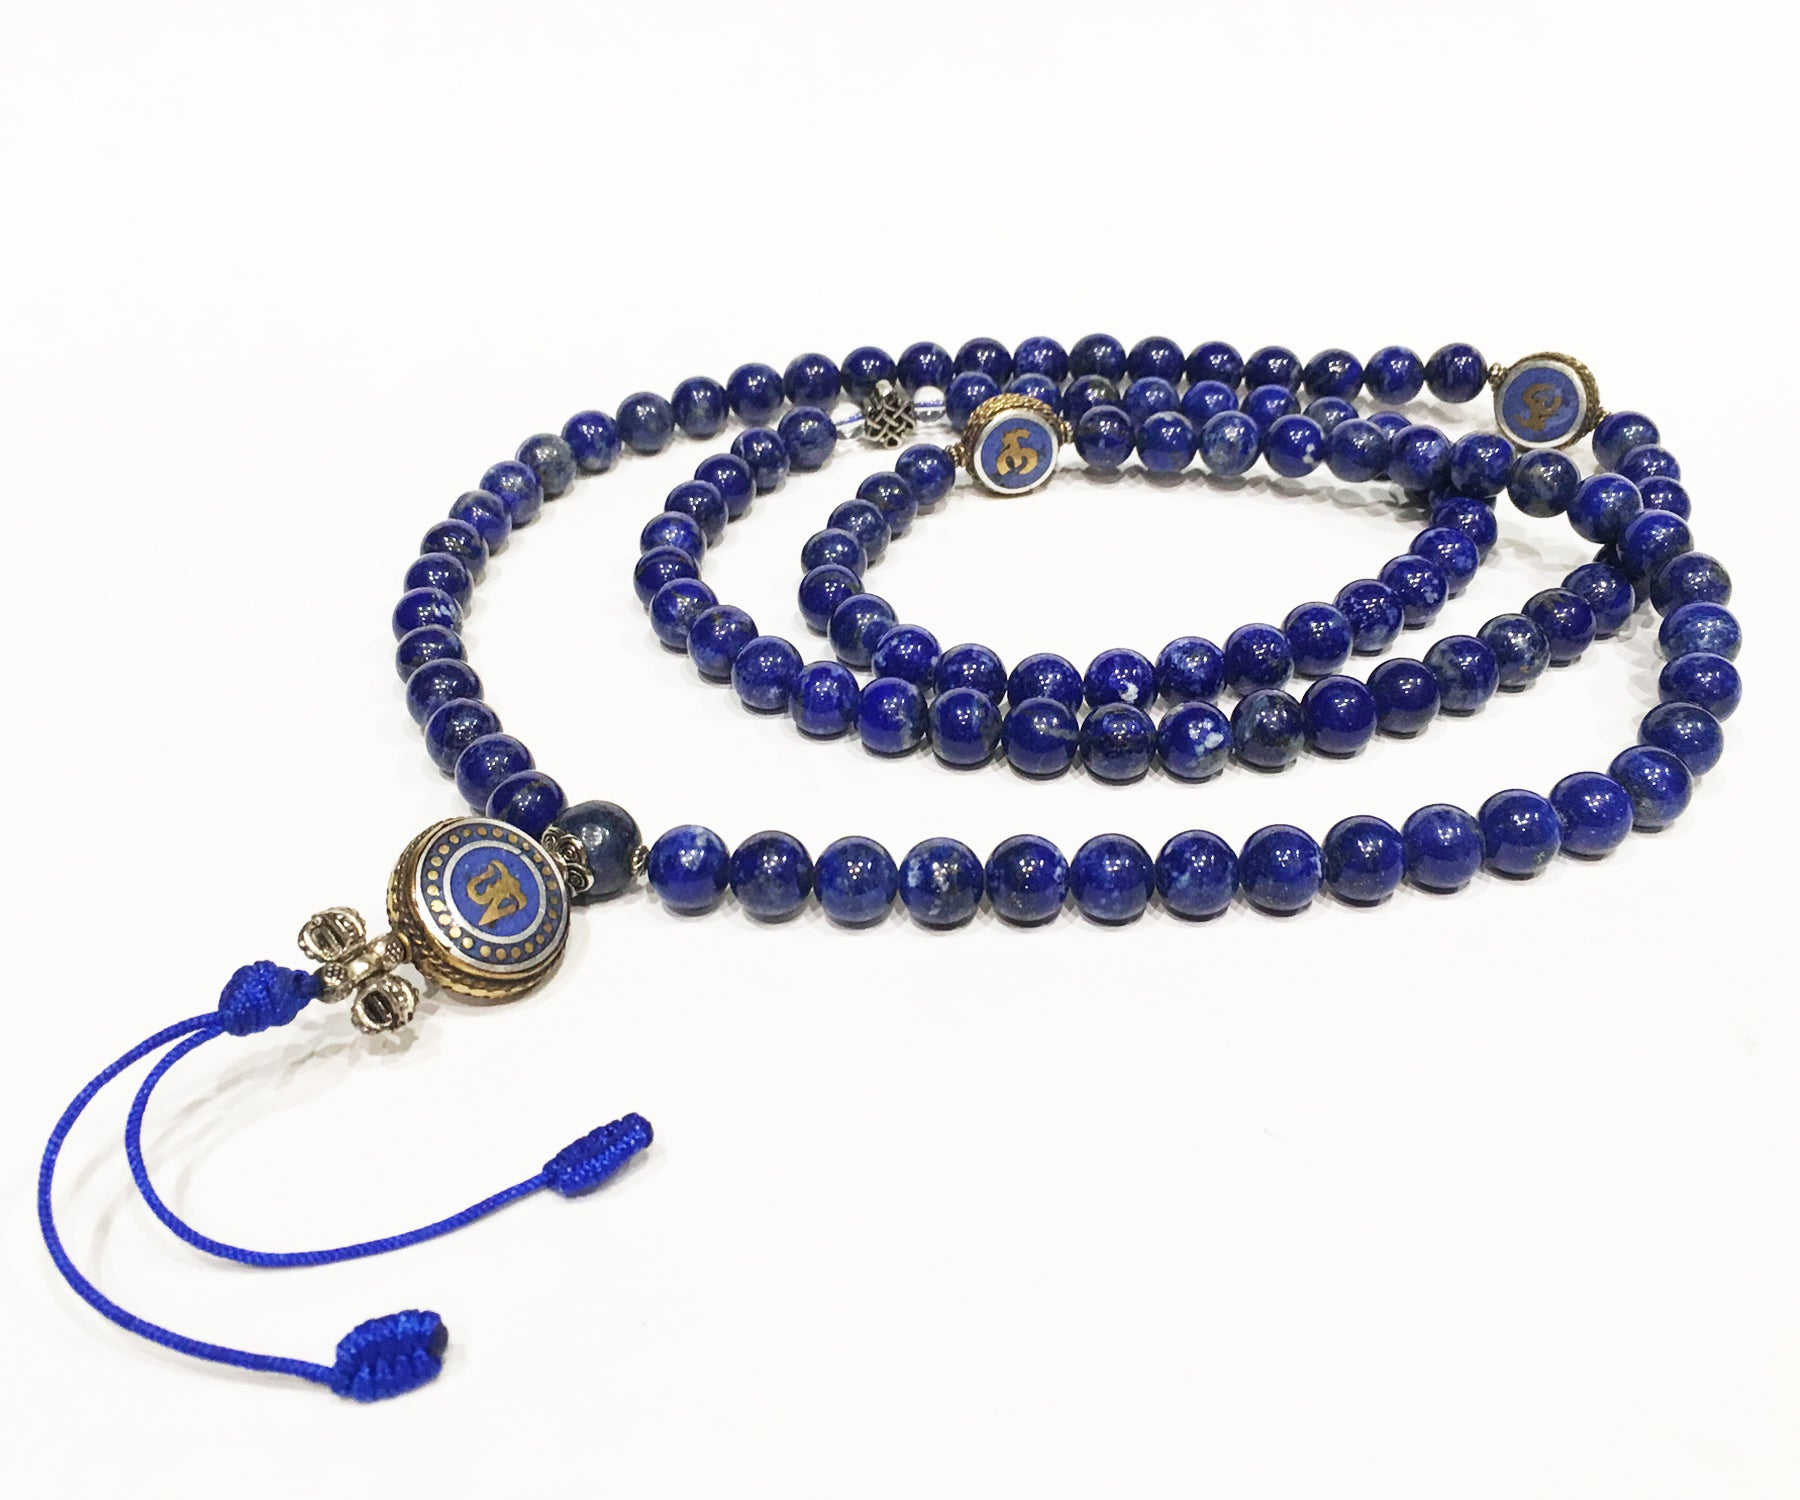 Special OM Lapis Necklace Mala - Tibet Arts & Healing